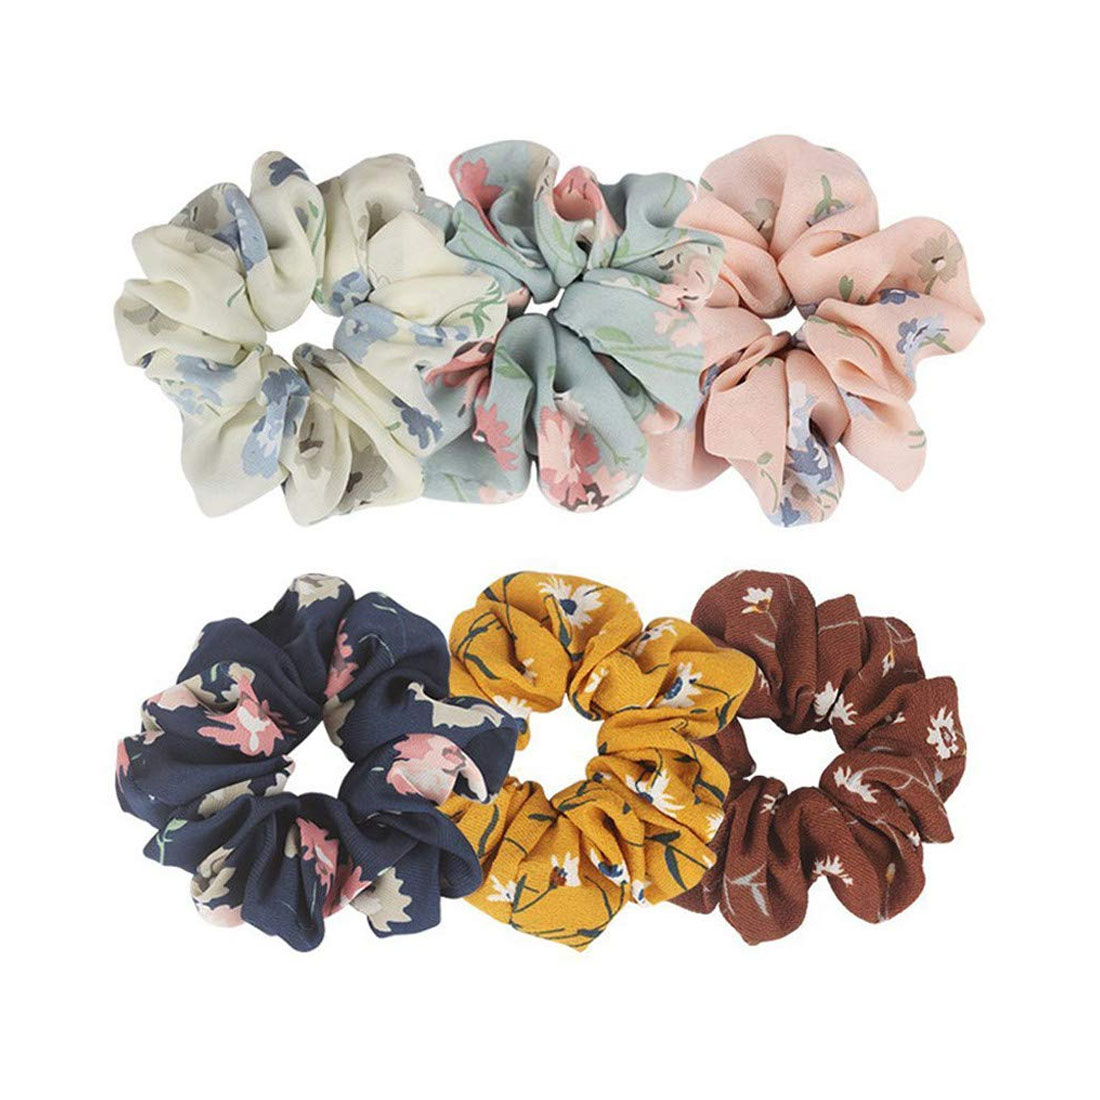 New 1PC Hair Band Rubber Band Head wear Cloth Strip Rainbow Retro Grid Printed Striped Hair Accessories Coconut Tree Fancy hair in Women 39 s Hair Accessories from Apparel Accessories